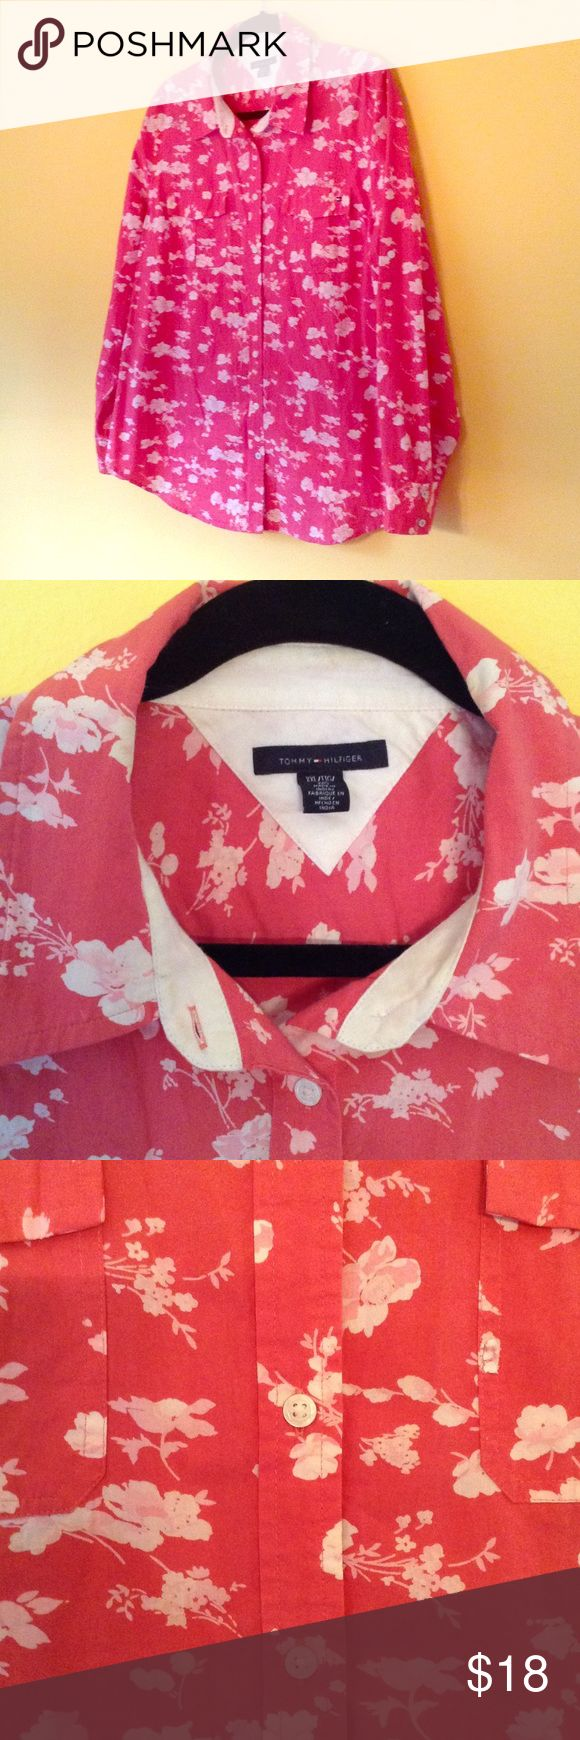 Tommy Hilfiger coral shirt Floral print button down shirt Tommy Hilfiger Tops Button Down Shirts